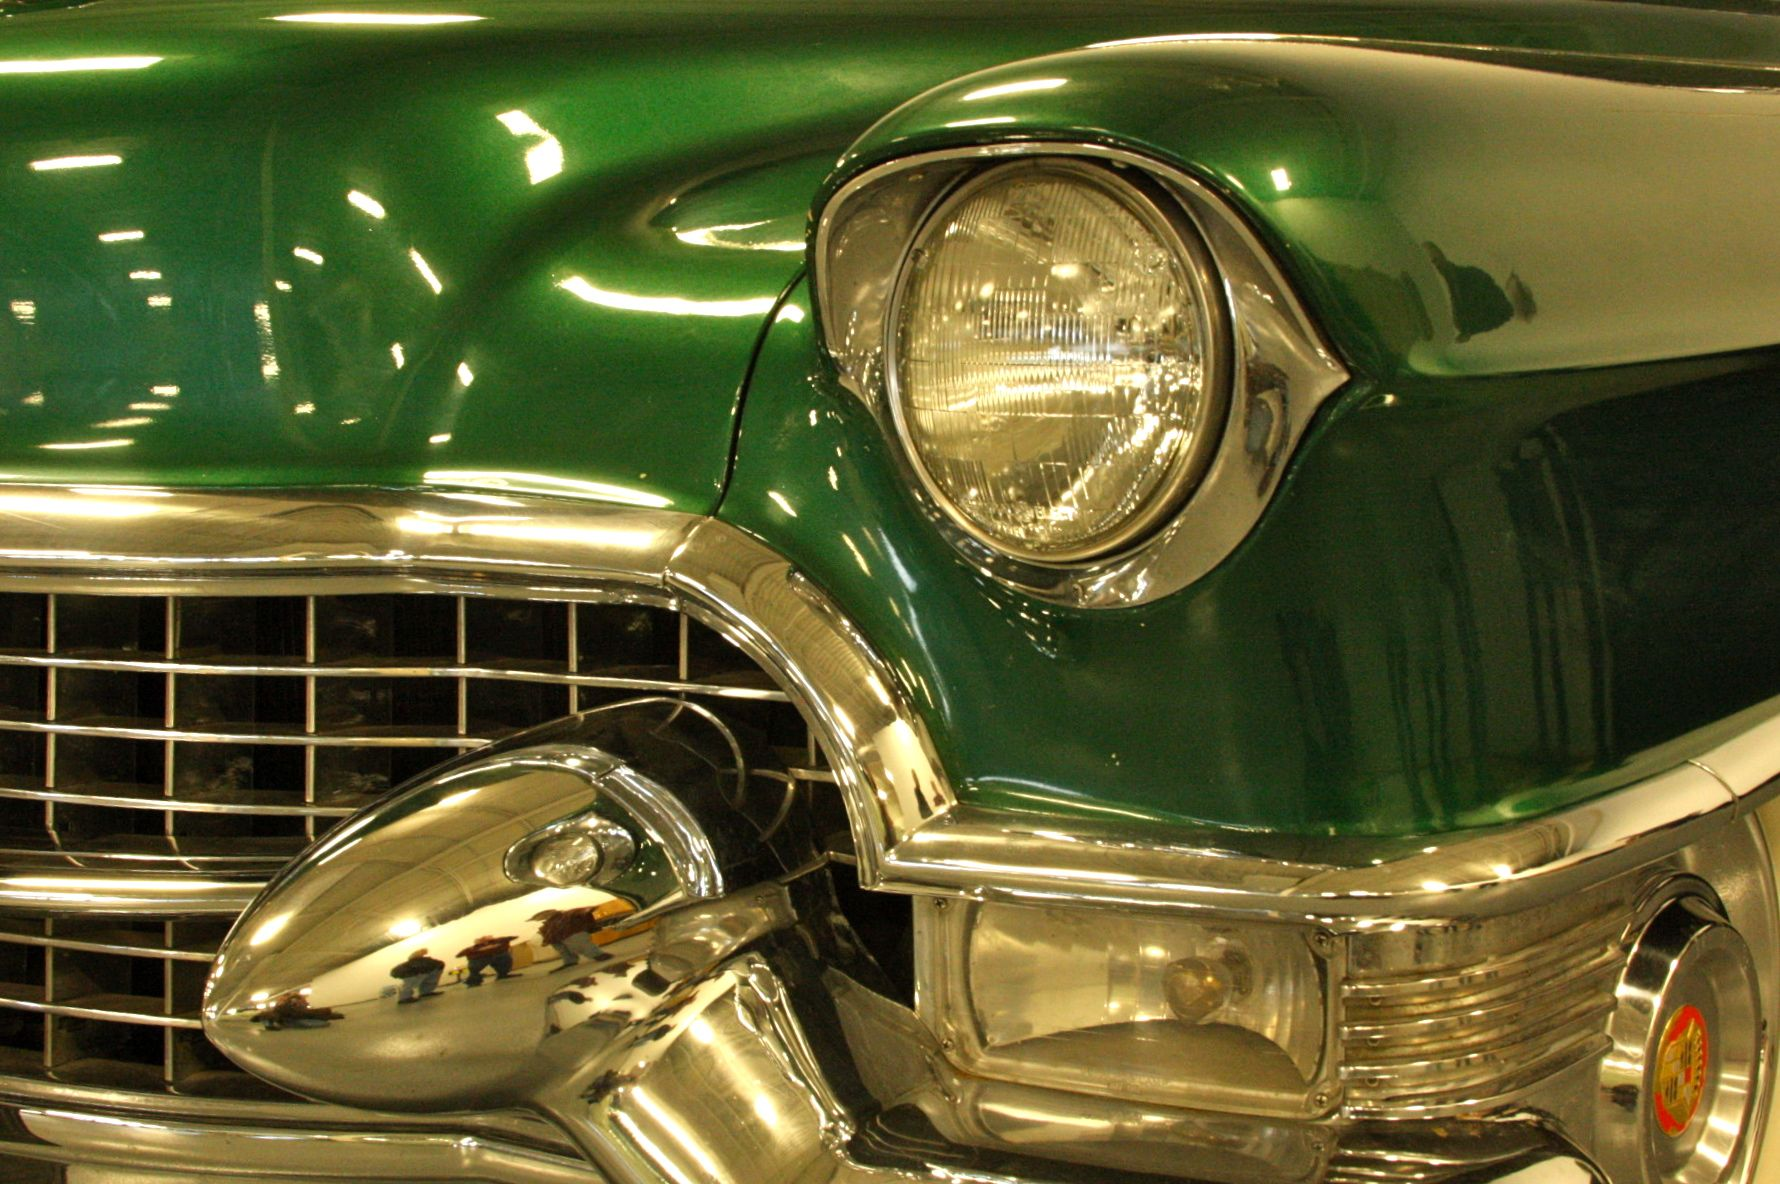 Vintage Fifties Cadillace